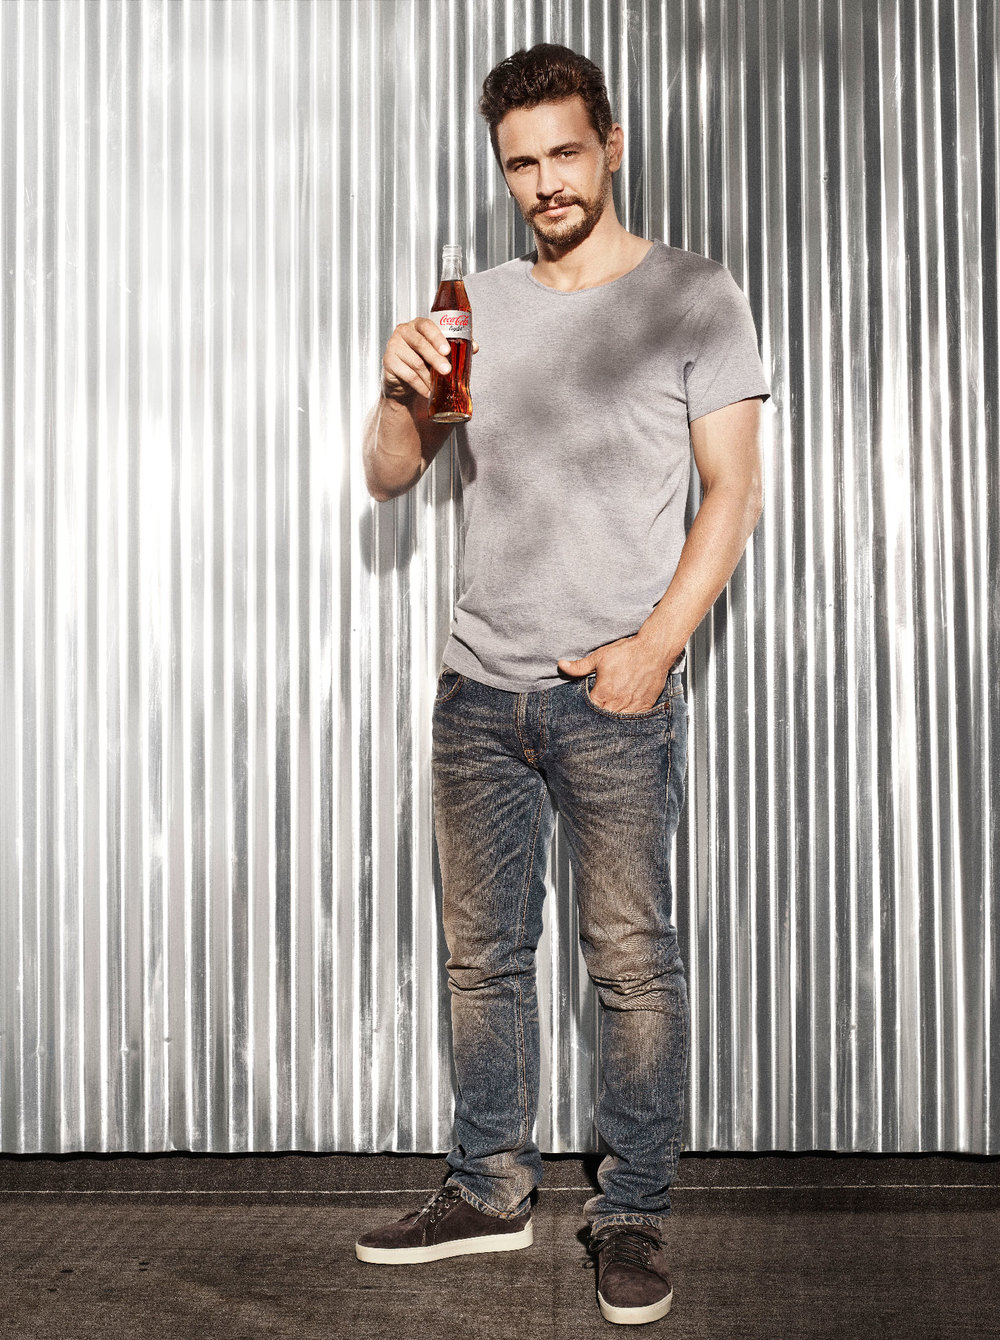 Studio-David-Fischer_Coke-Light_James-Franco-05.jpg